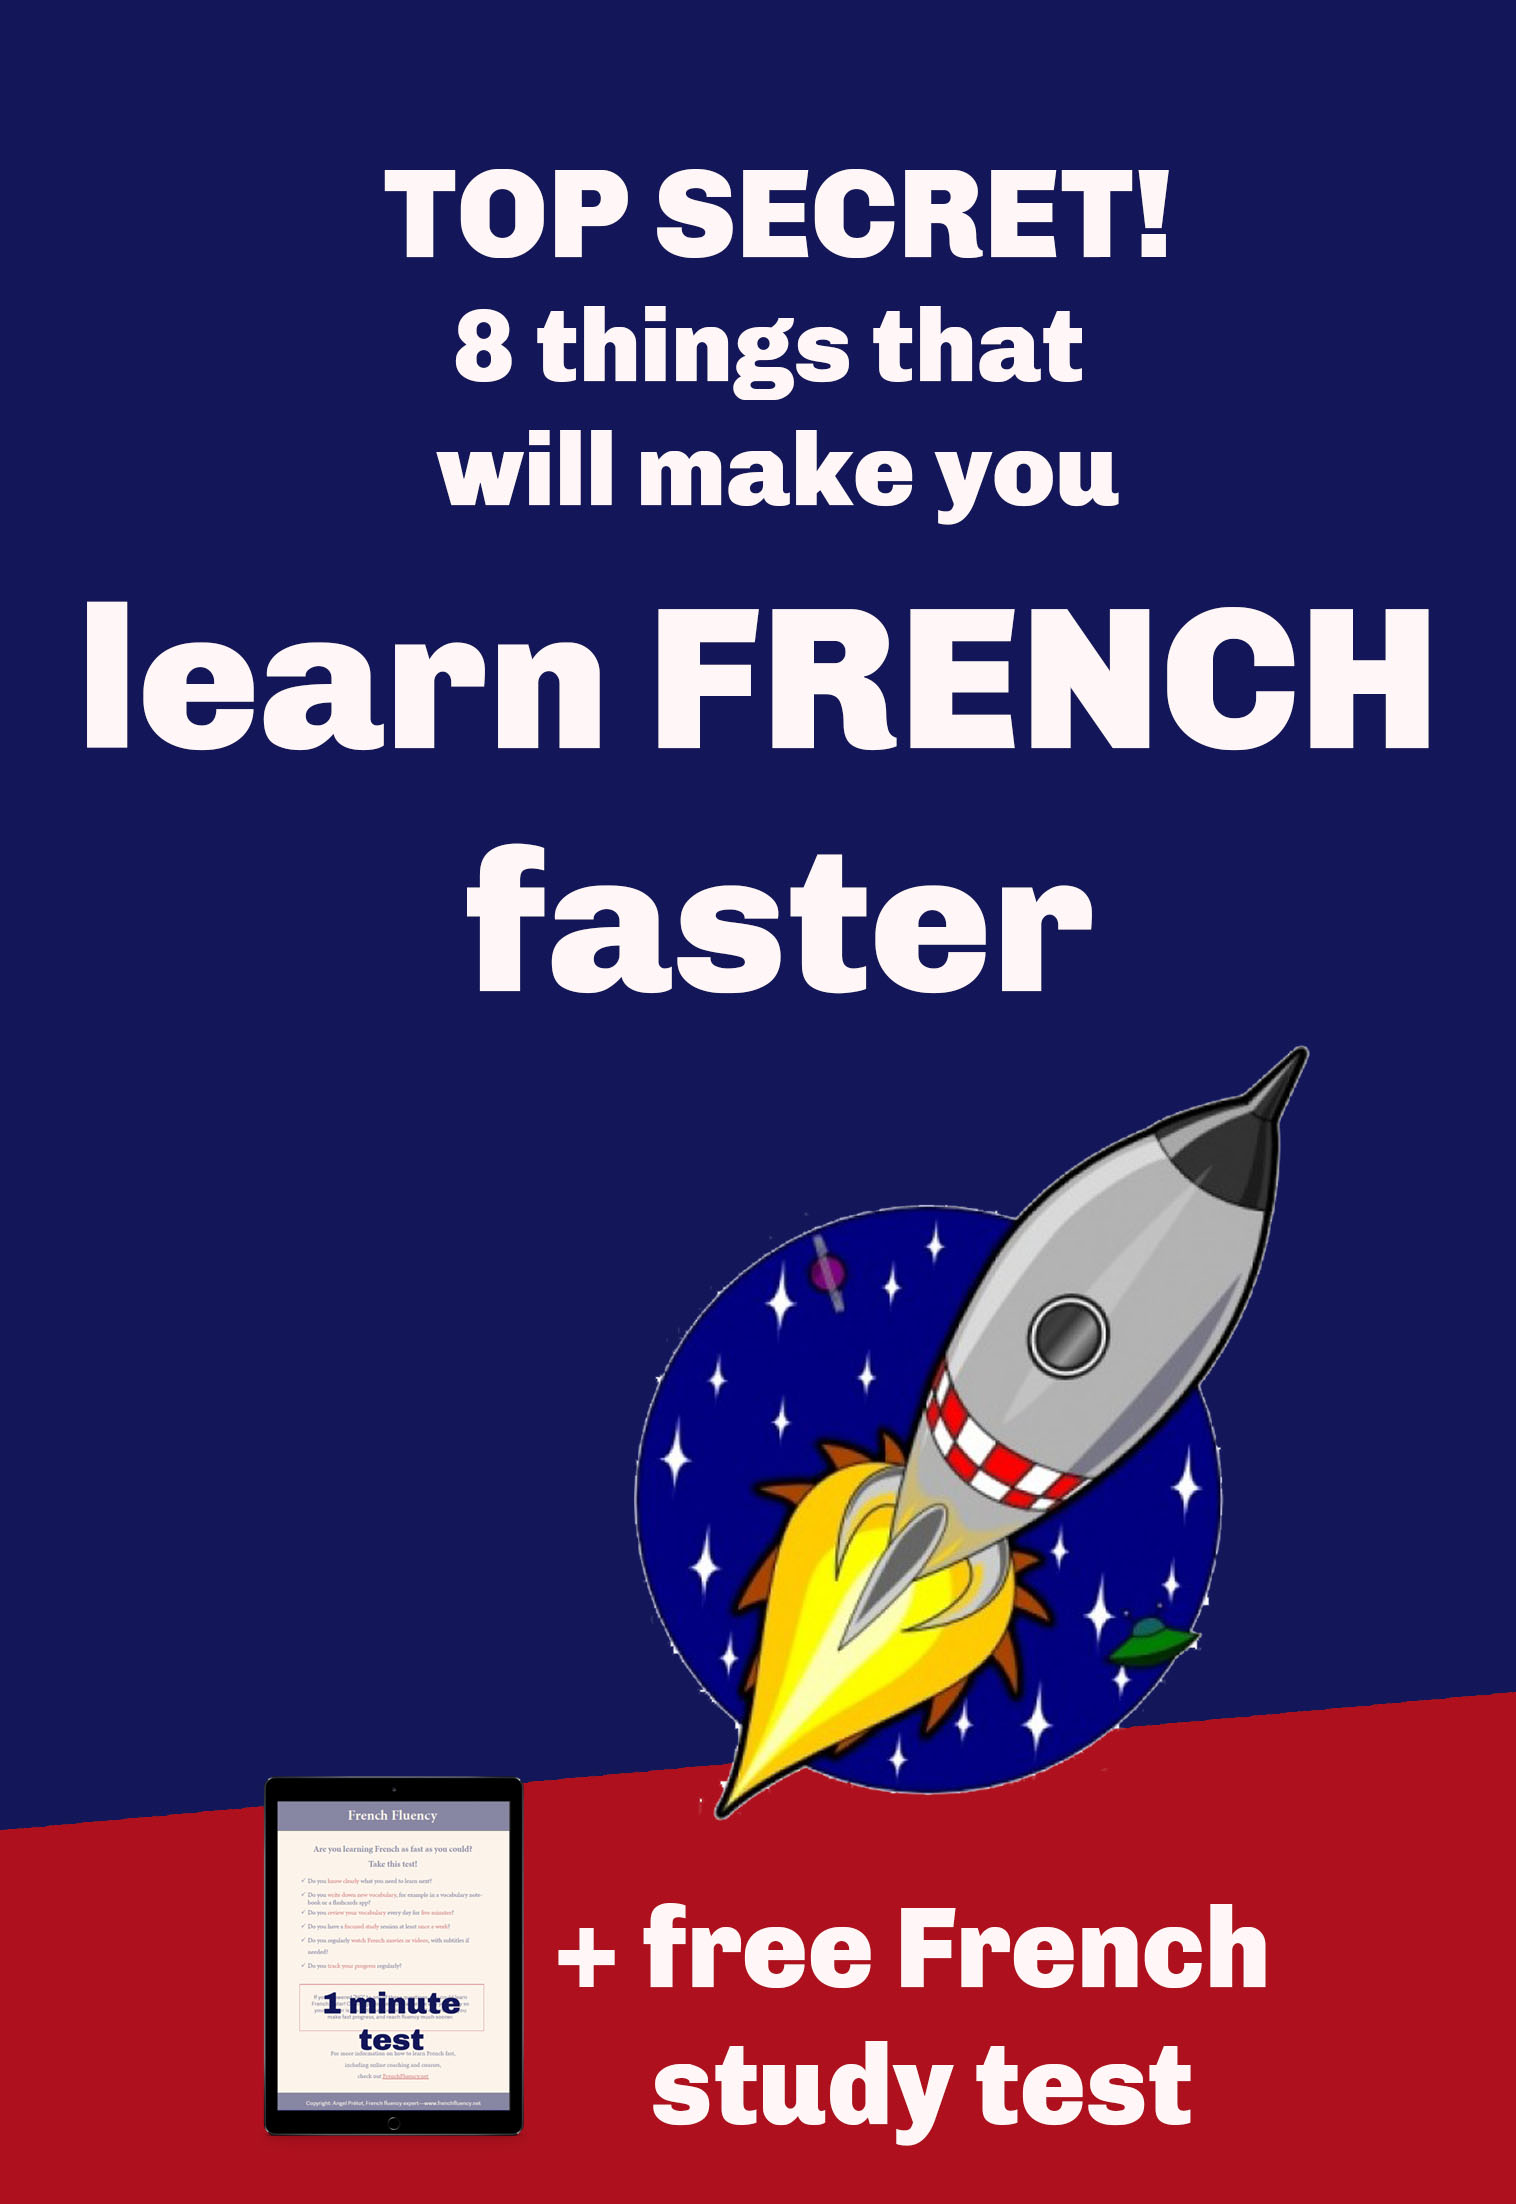 how to learn French fast